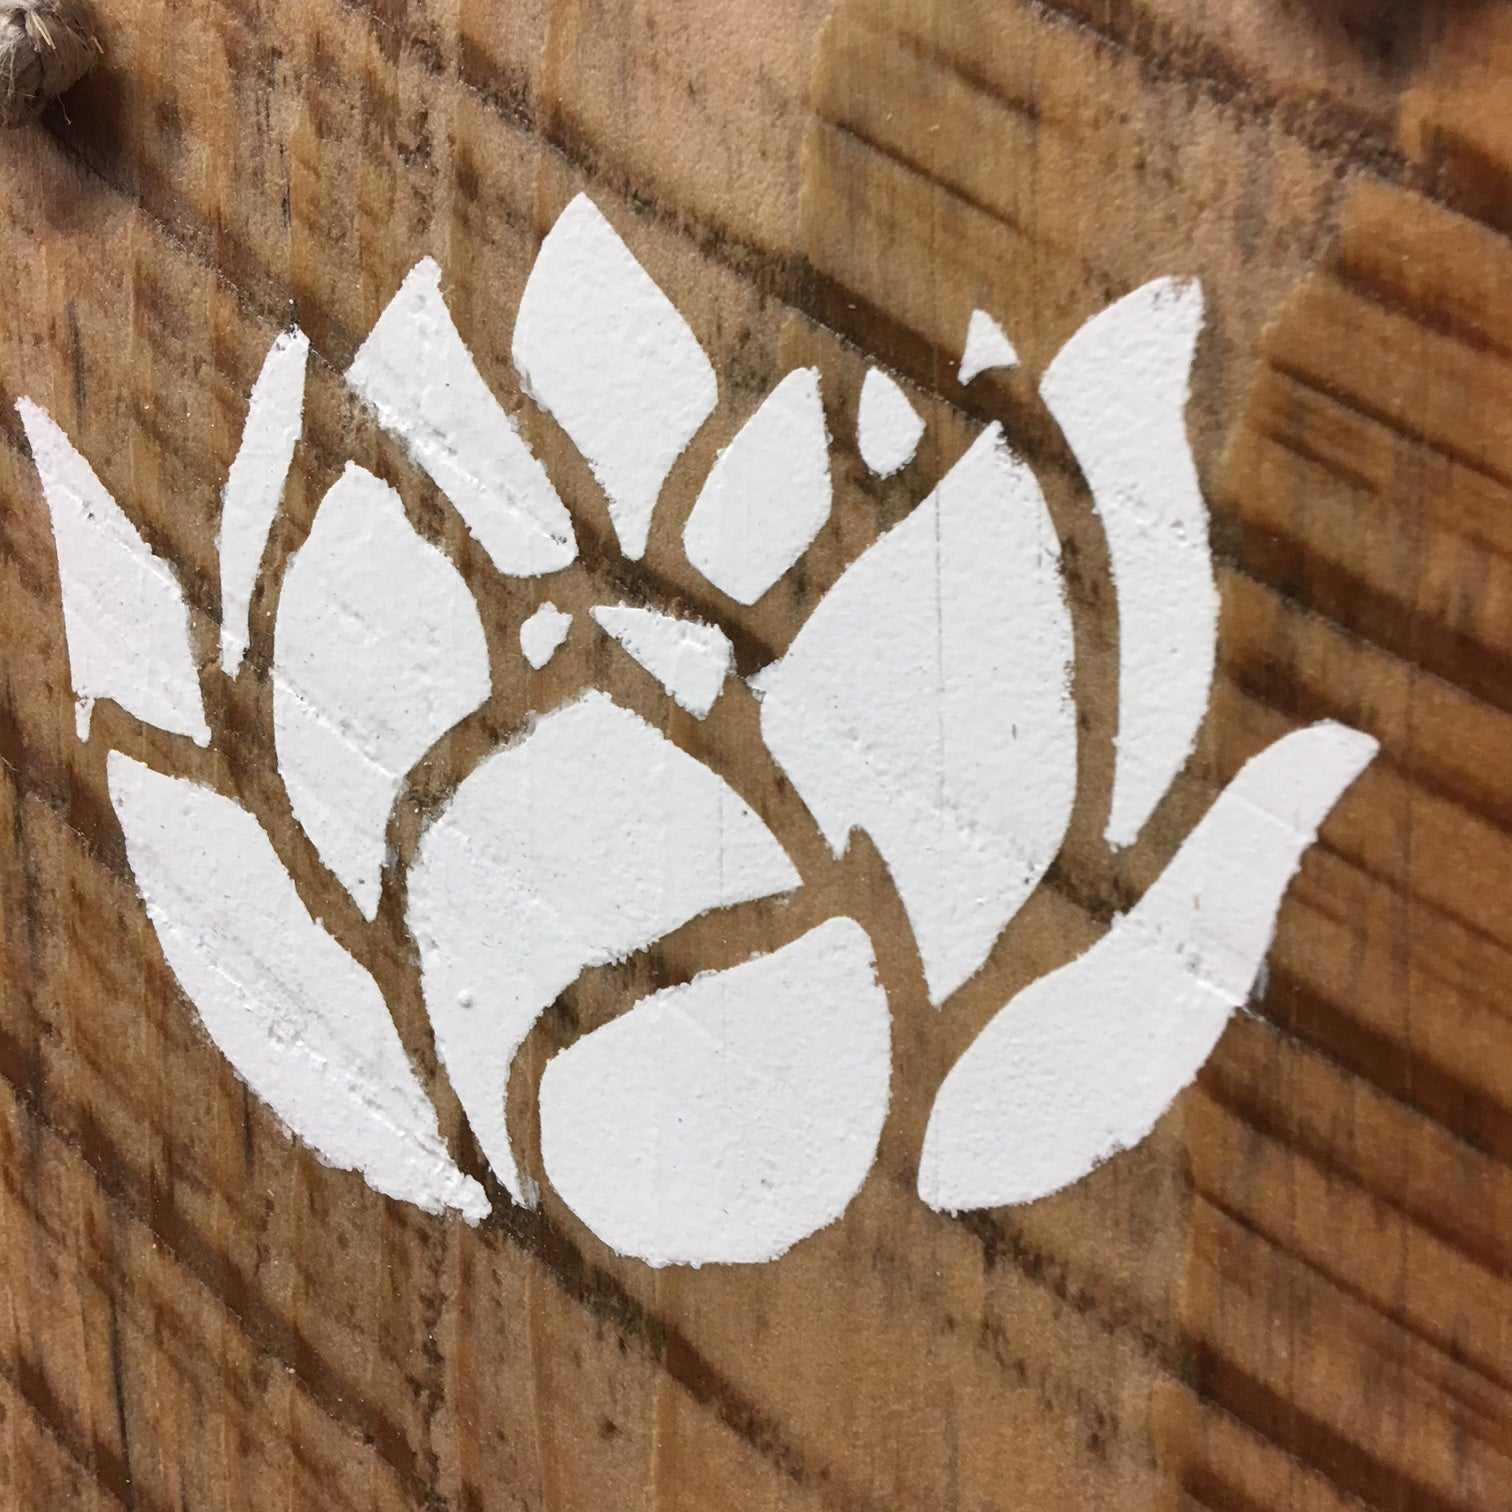 white lotus flower reclaimed wood sign rebirth enlightenment